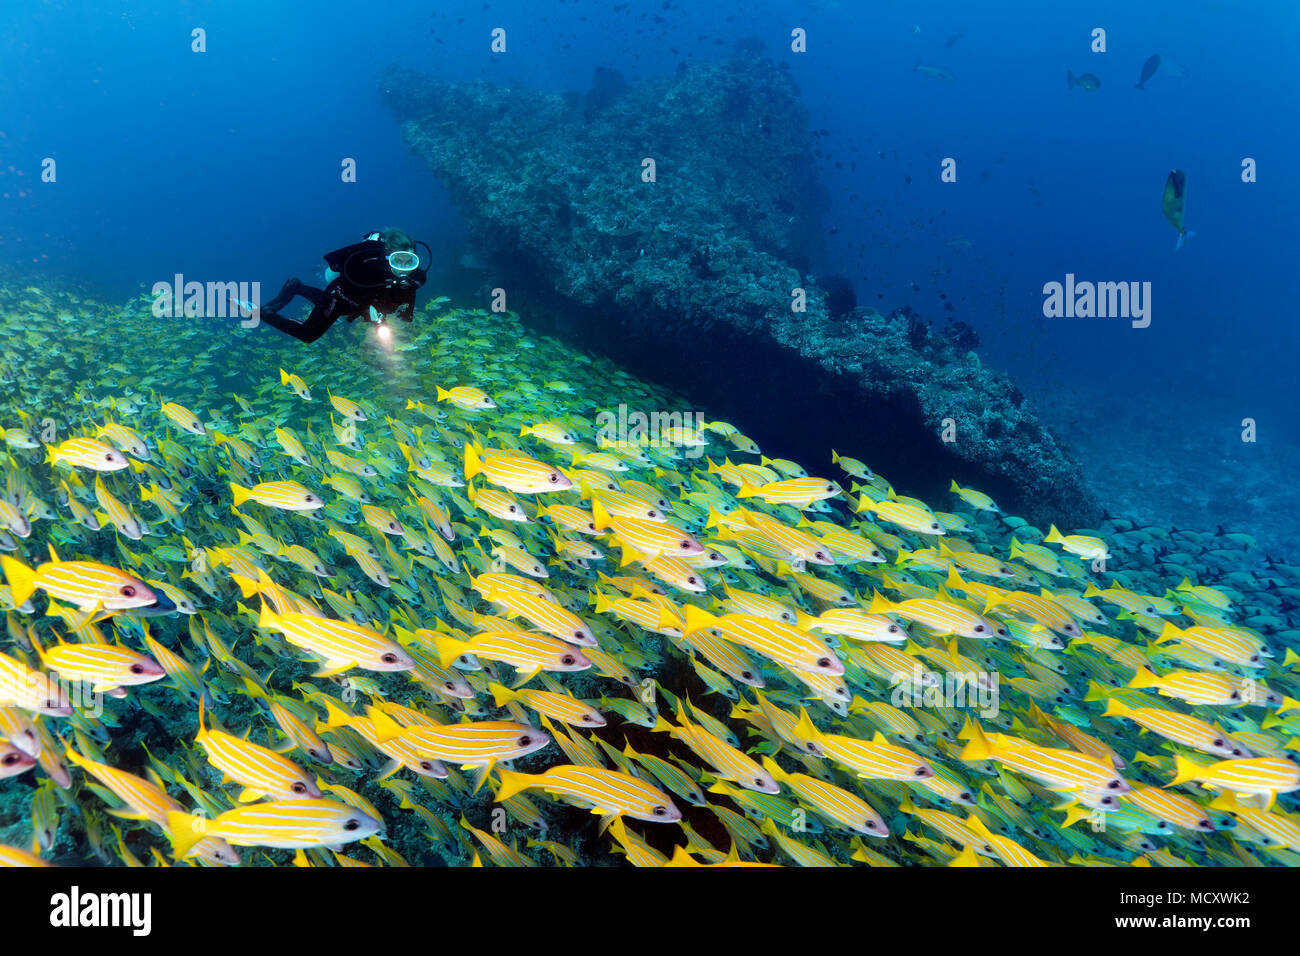 Diver watches large shoal of fish Bluestripe snapper (Lutjanus kasmira), Indian Ocean, Maldives - Stock Image